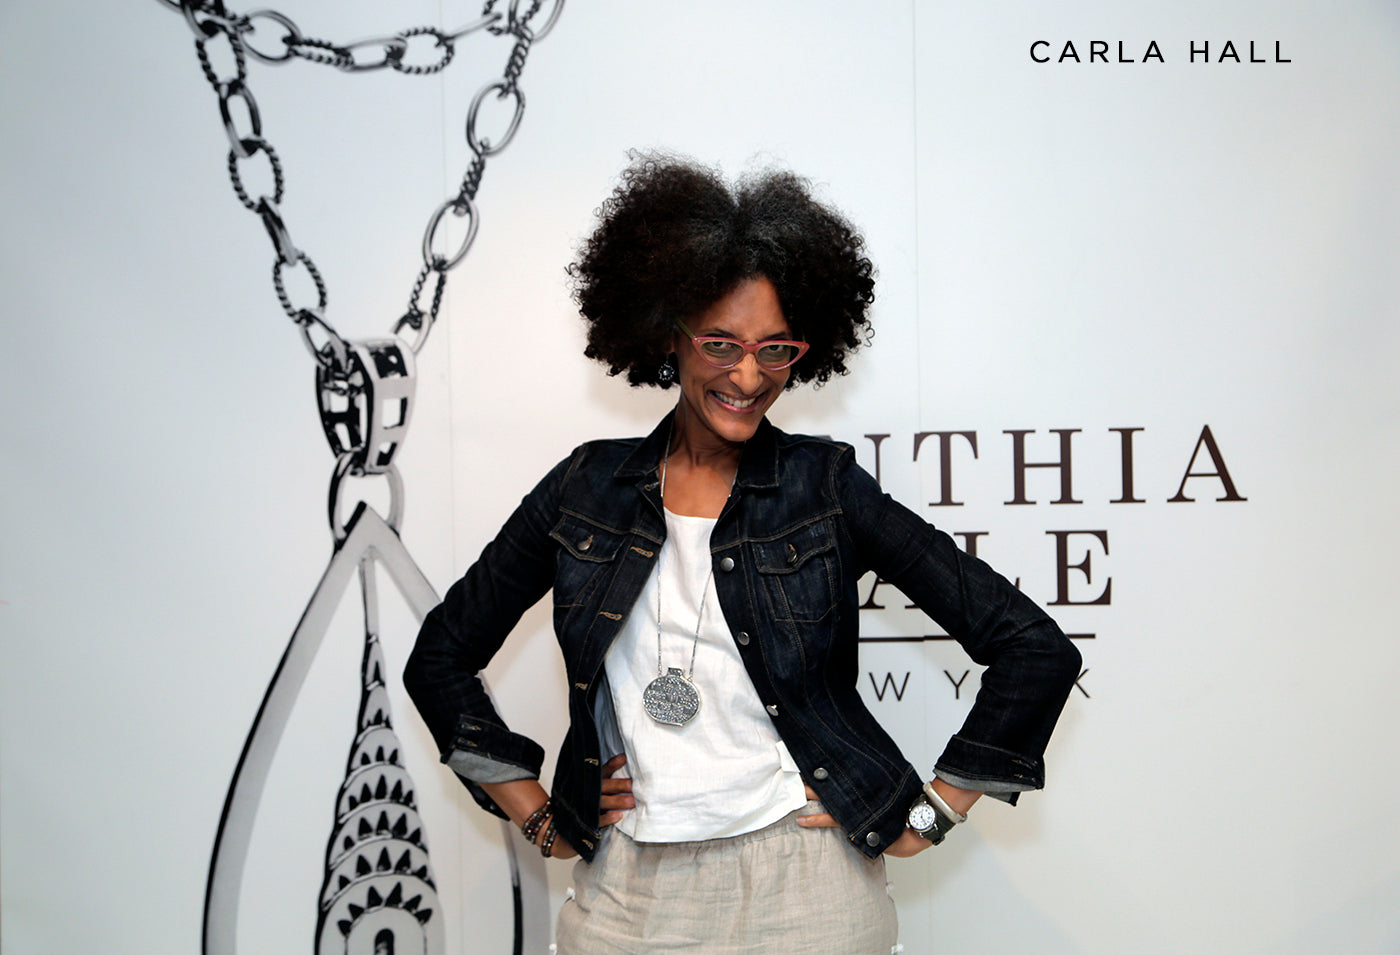 Carla Hall style fashion